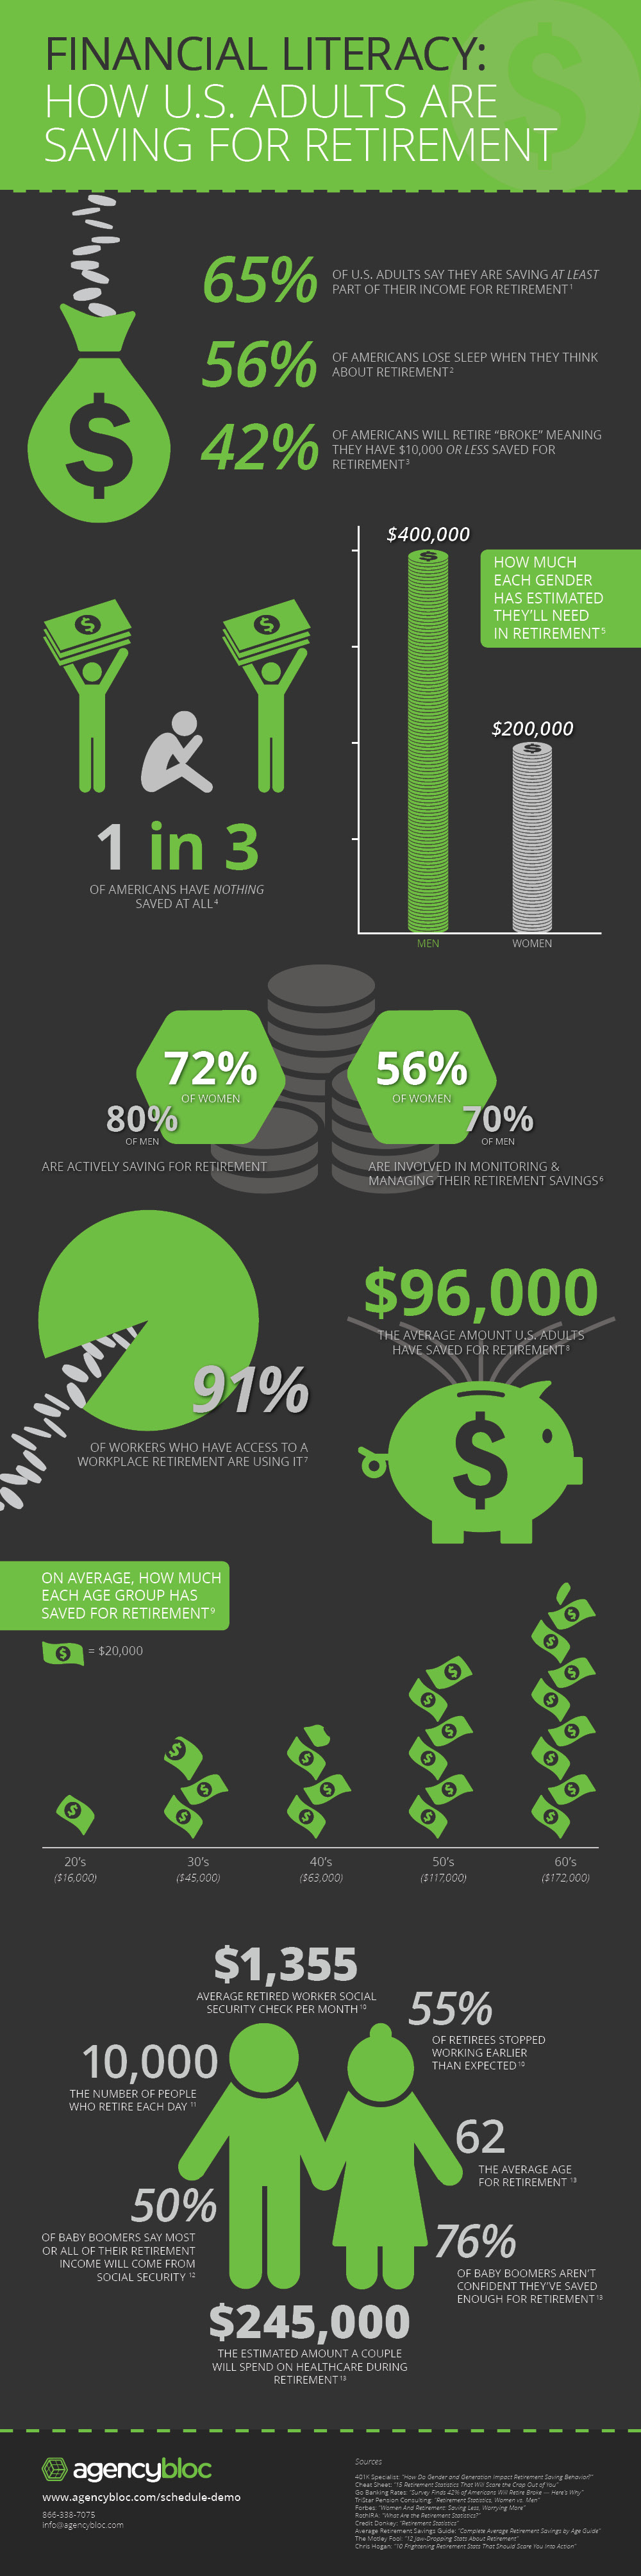 [Infographic] How Life & Health Insurance Agents Can Help Adults Save for Retirement